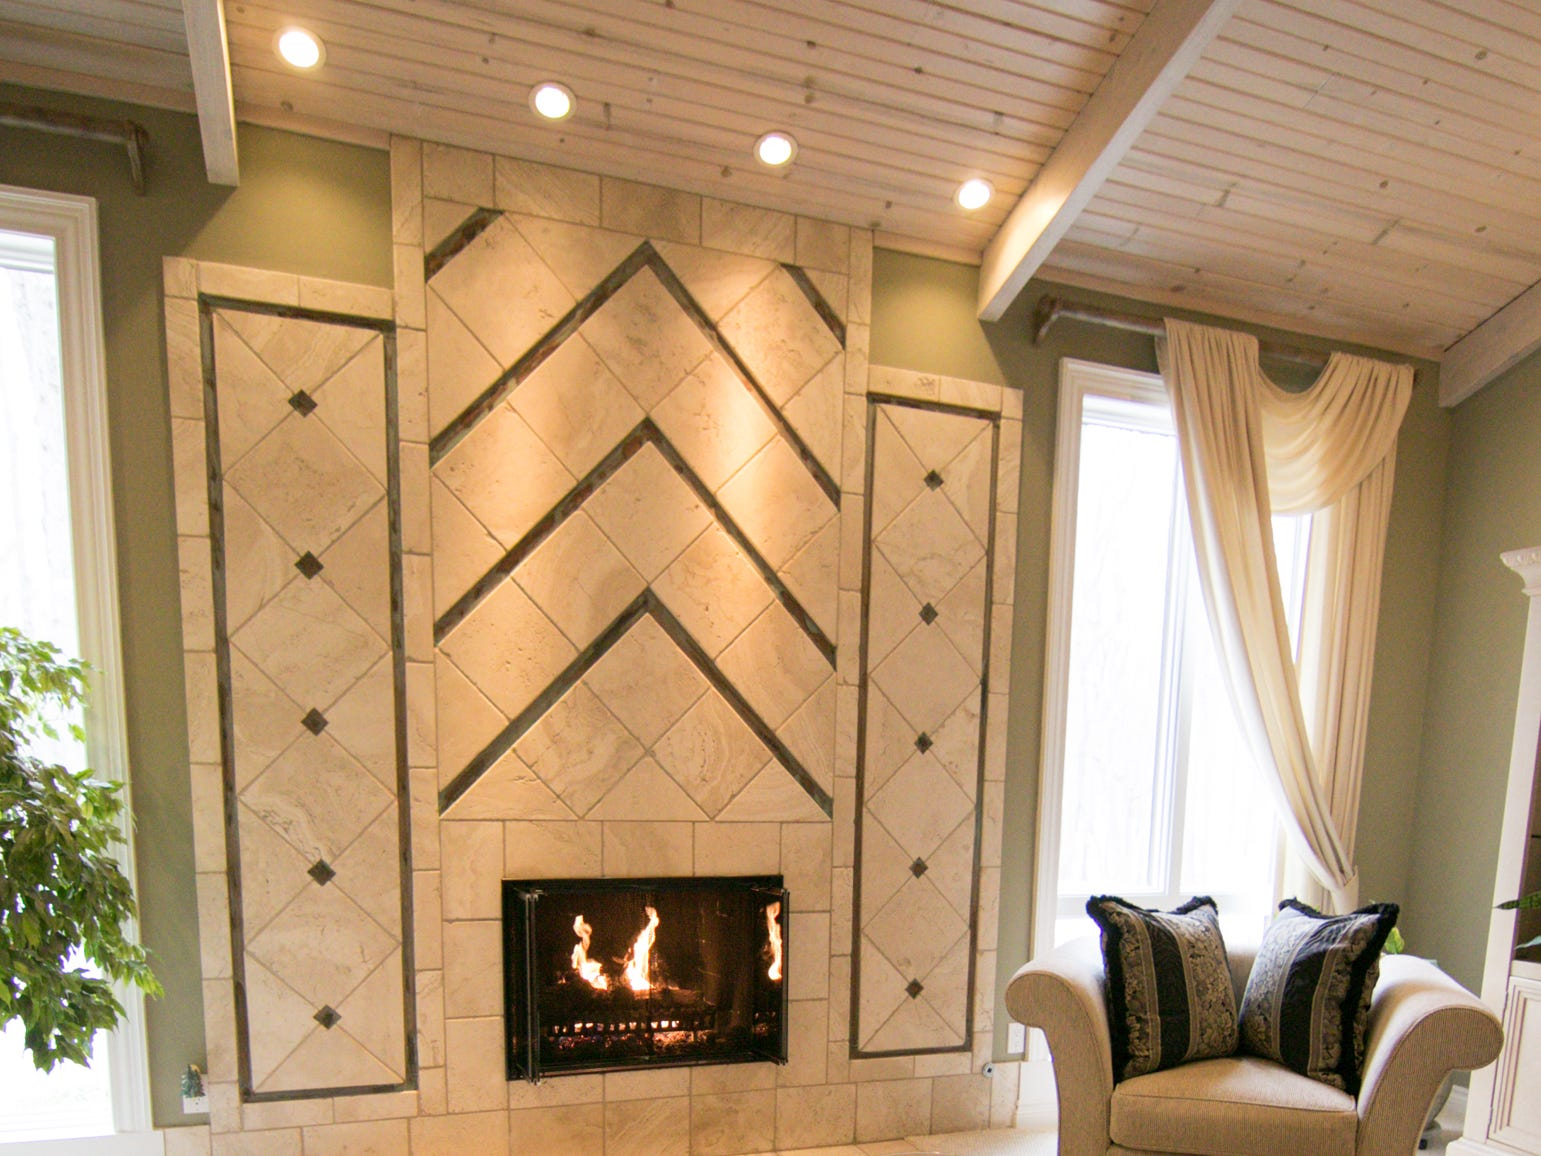 A fireplace and ceiling, shown Thursday, Jan. 17, 2019, were inspired by one of the homeowners' favorite restaurants.